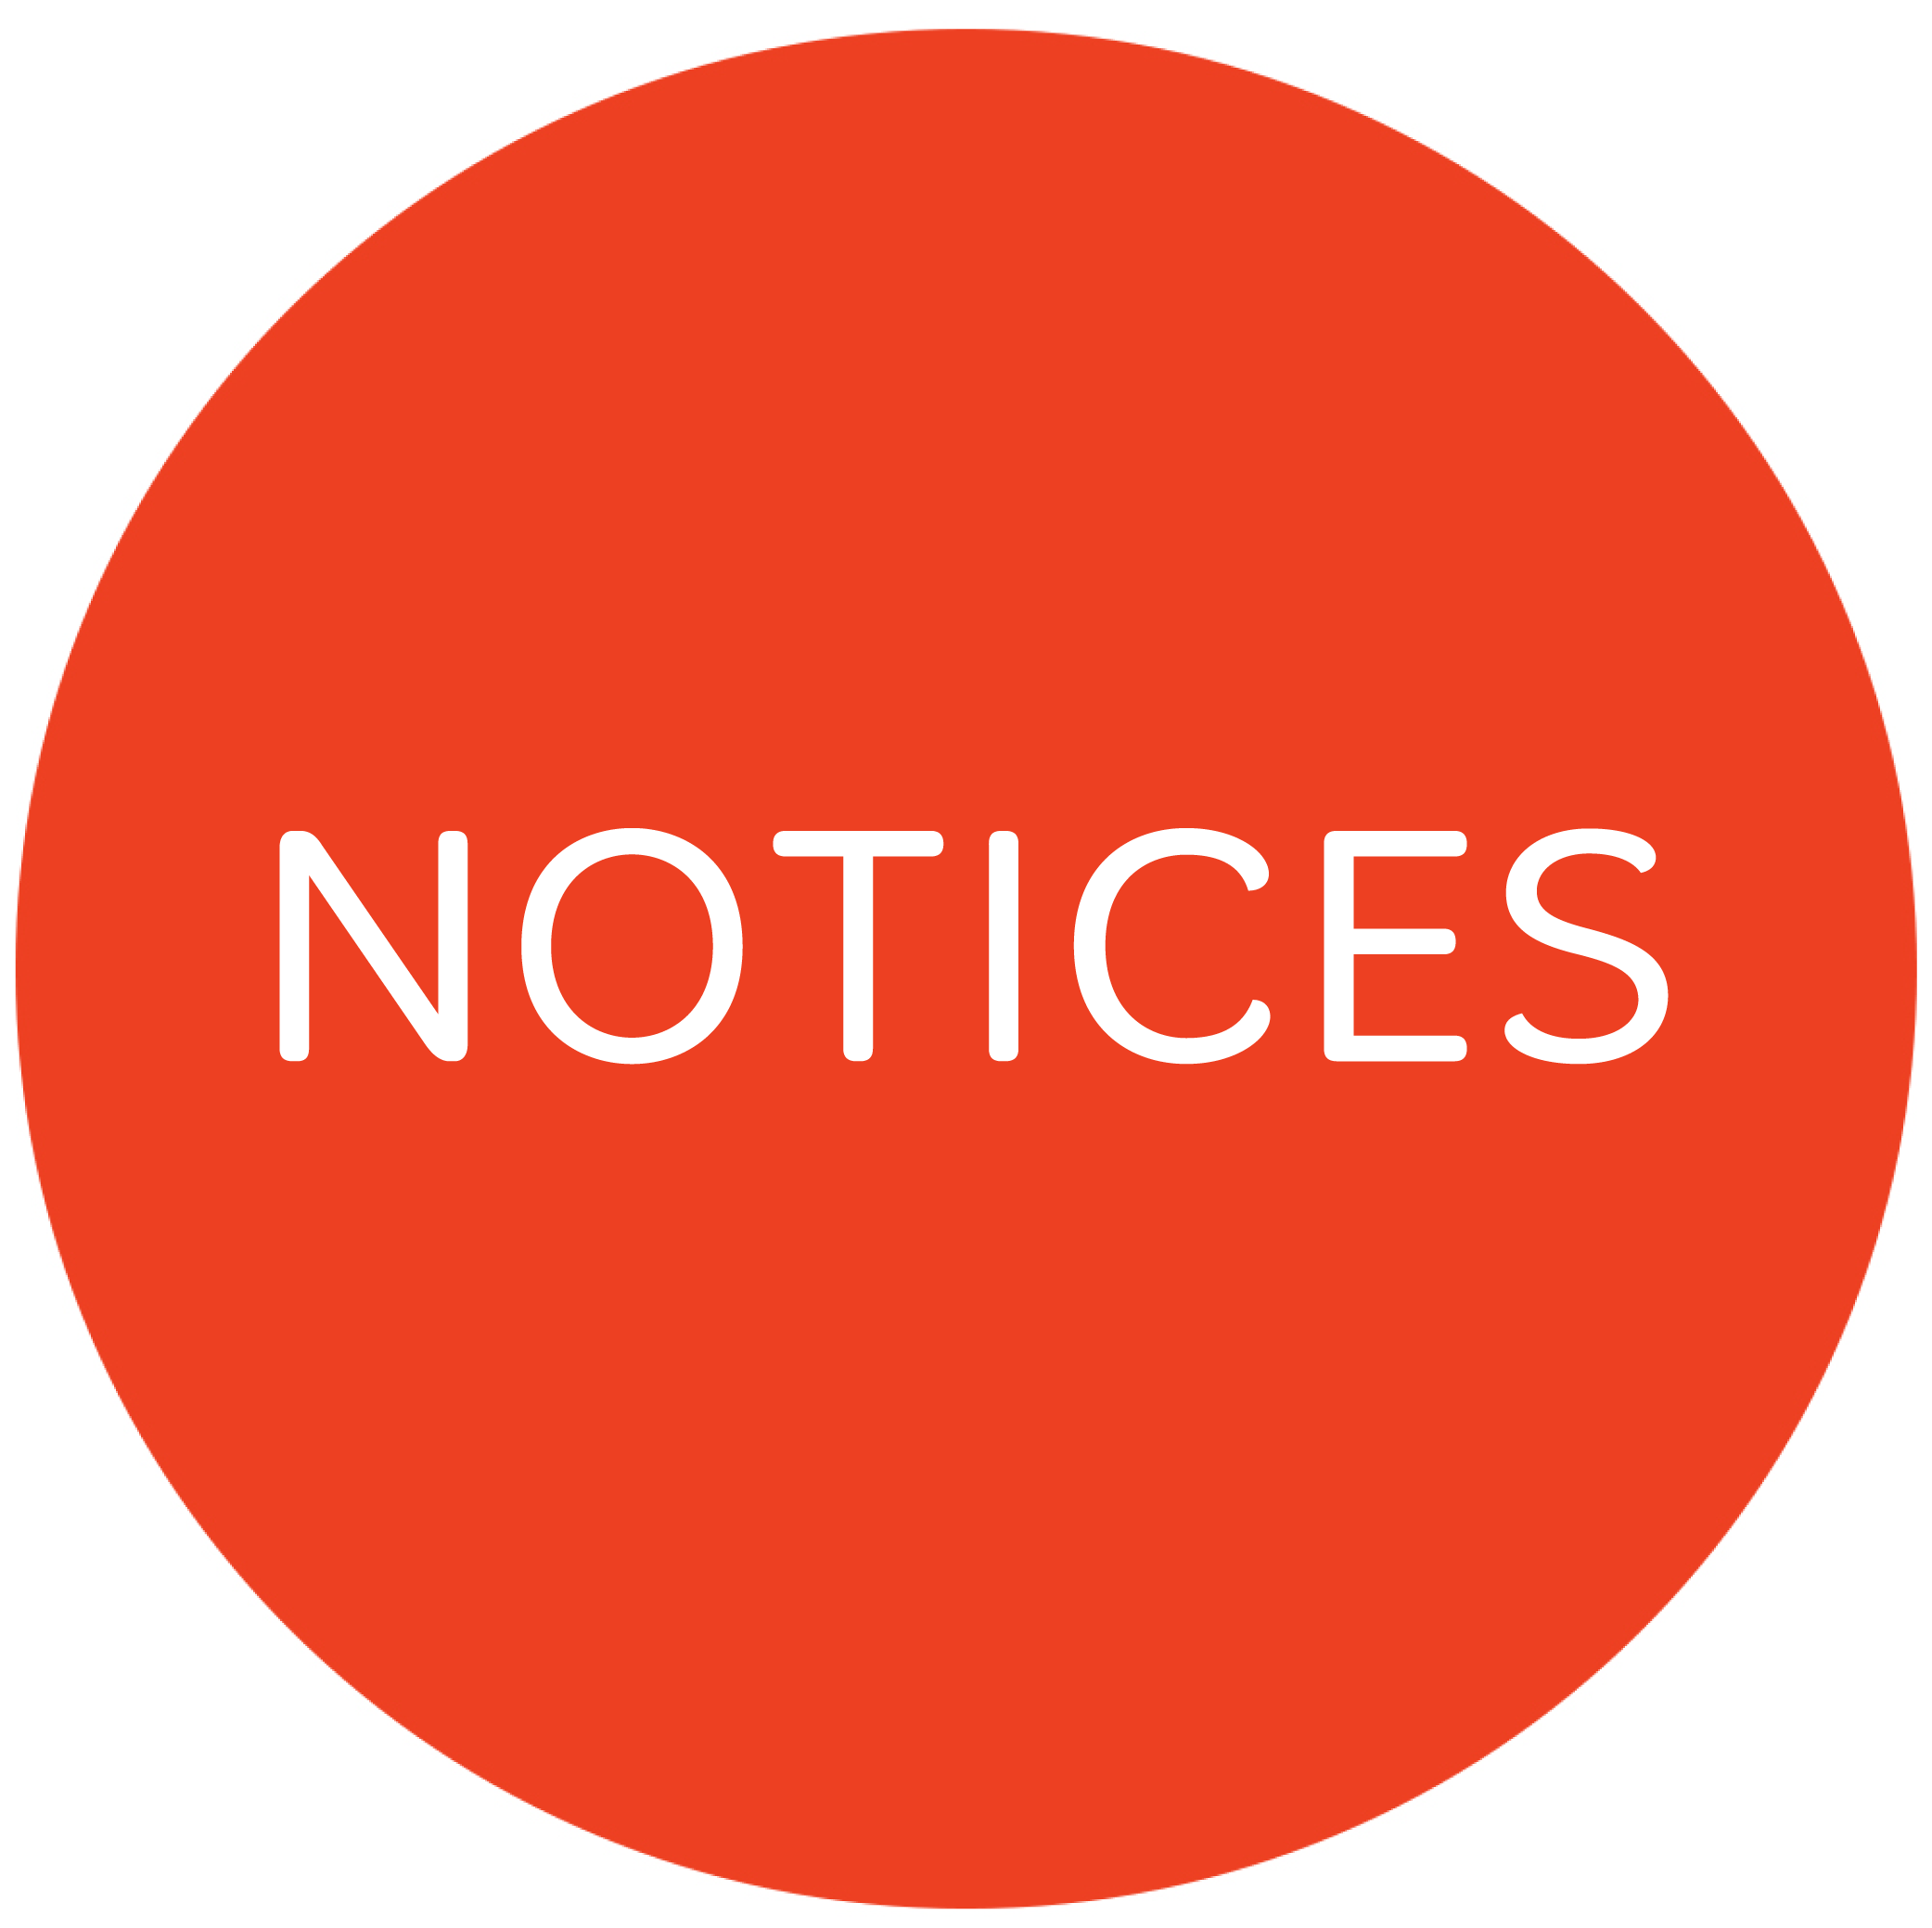 Notices- 27 May 2018